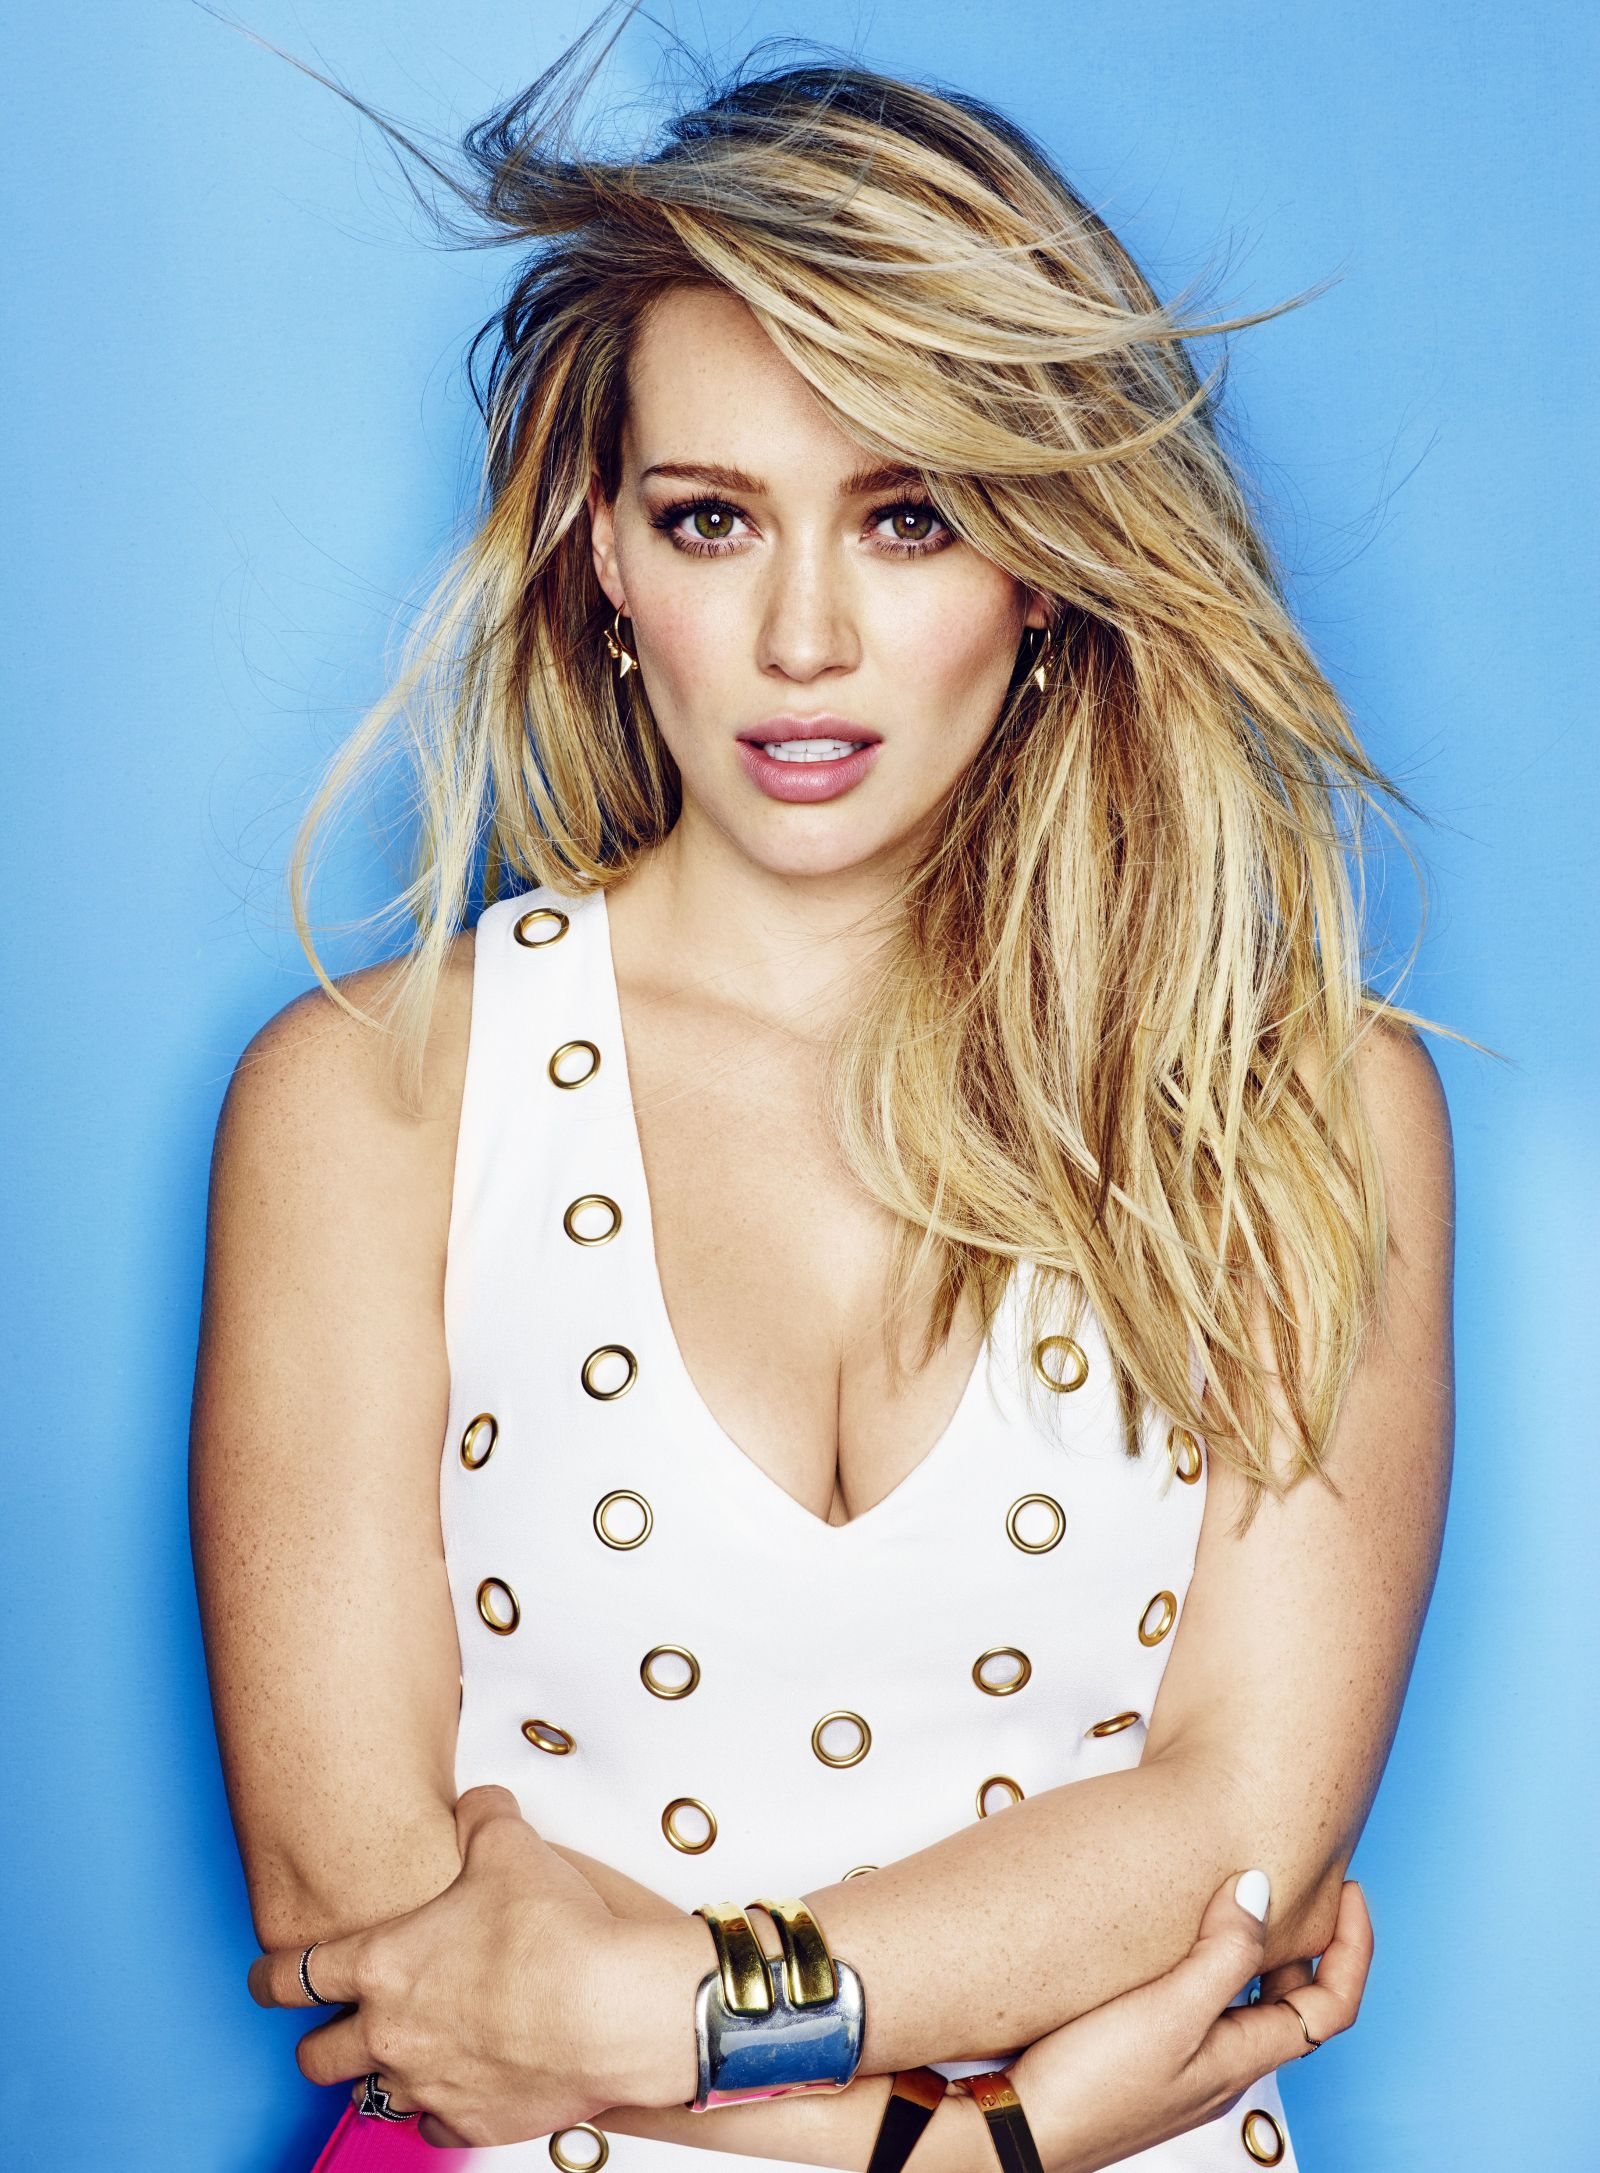 Hilary duff virginity